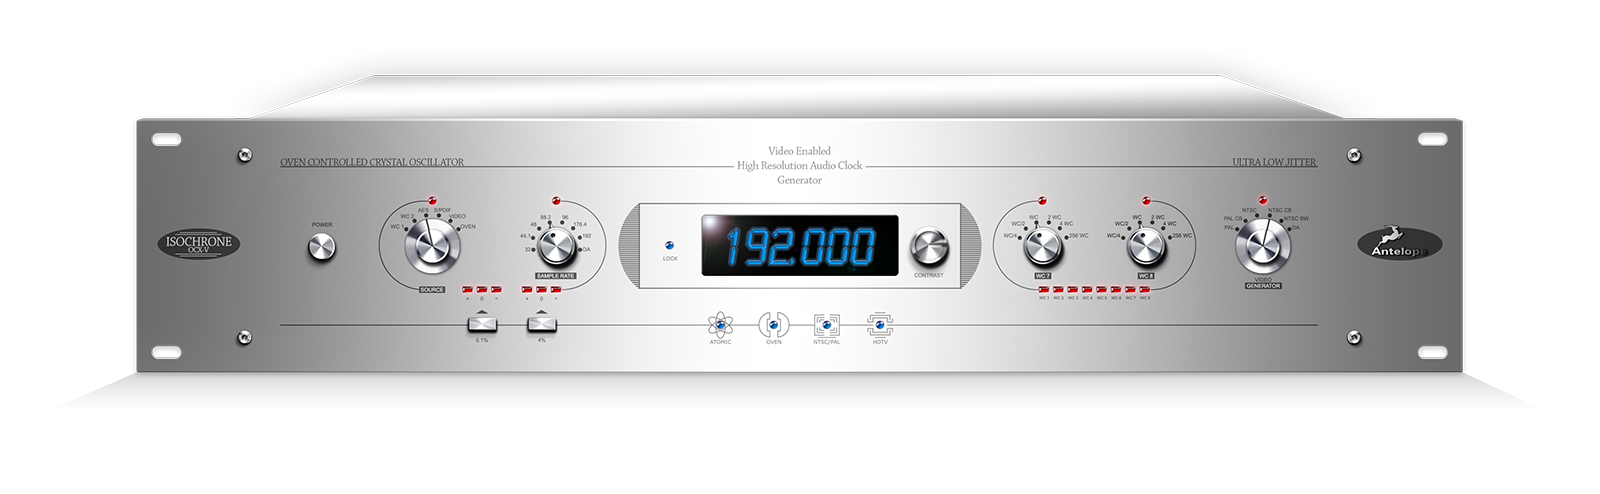 Video-enabled audio master clock compatible with most HD video formats